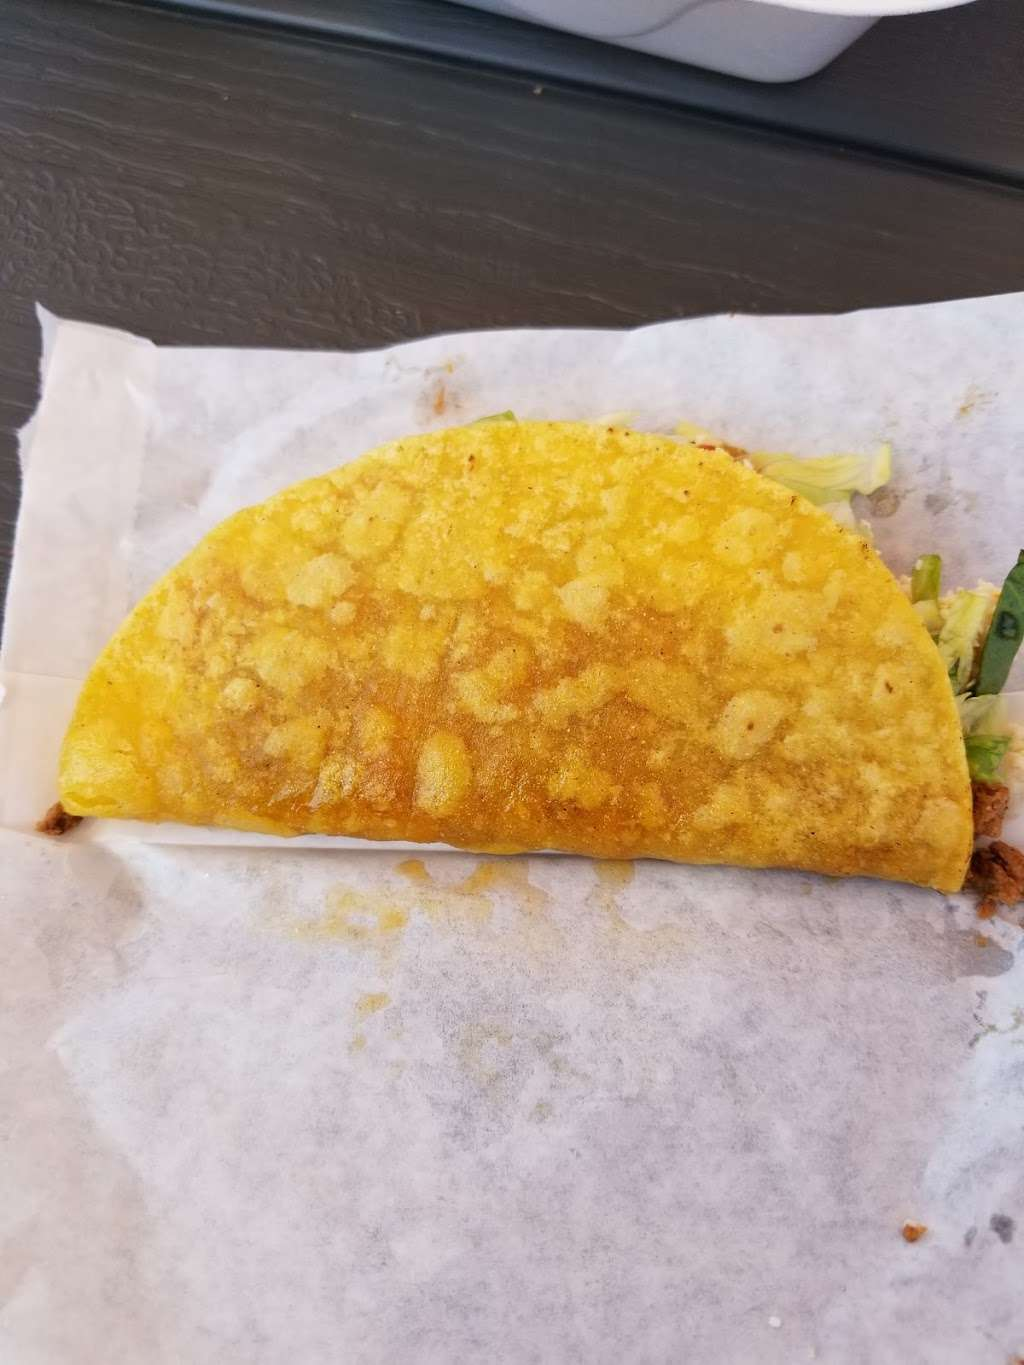 Taco Shoppe - meal delivery  | Photo 5 of 10 | Address: 108 East W Broadway St, Monticello, IN 47960, USA | Phone: (574) 870-2855